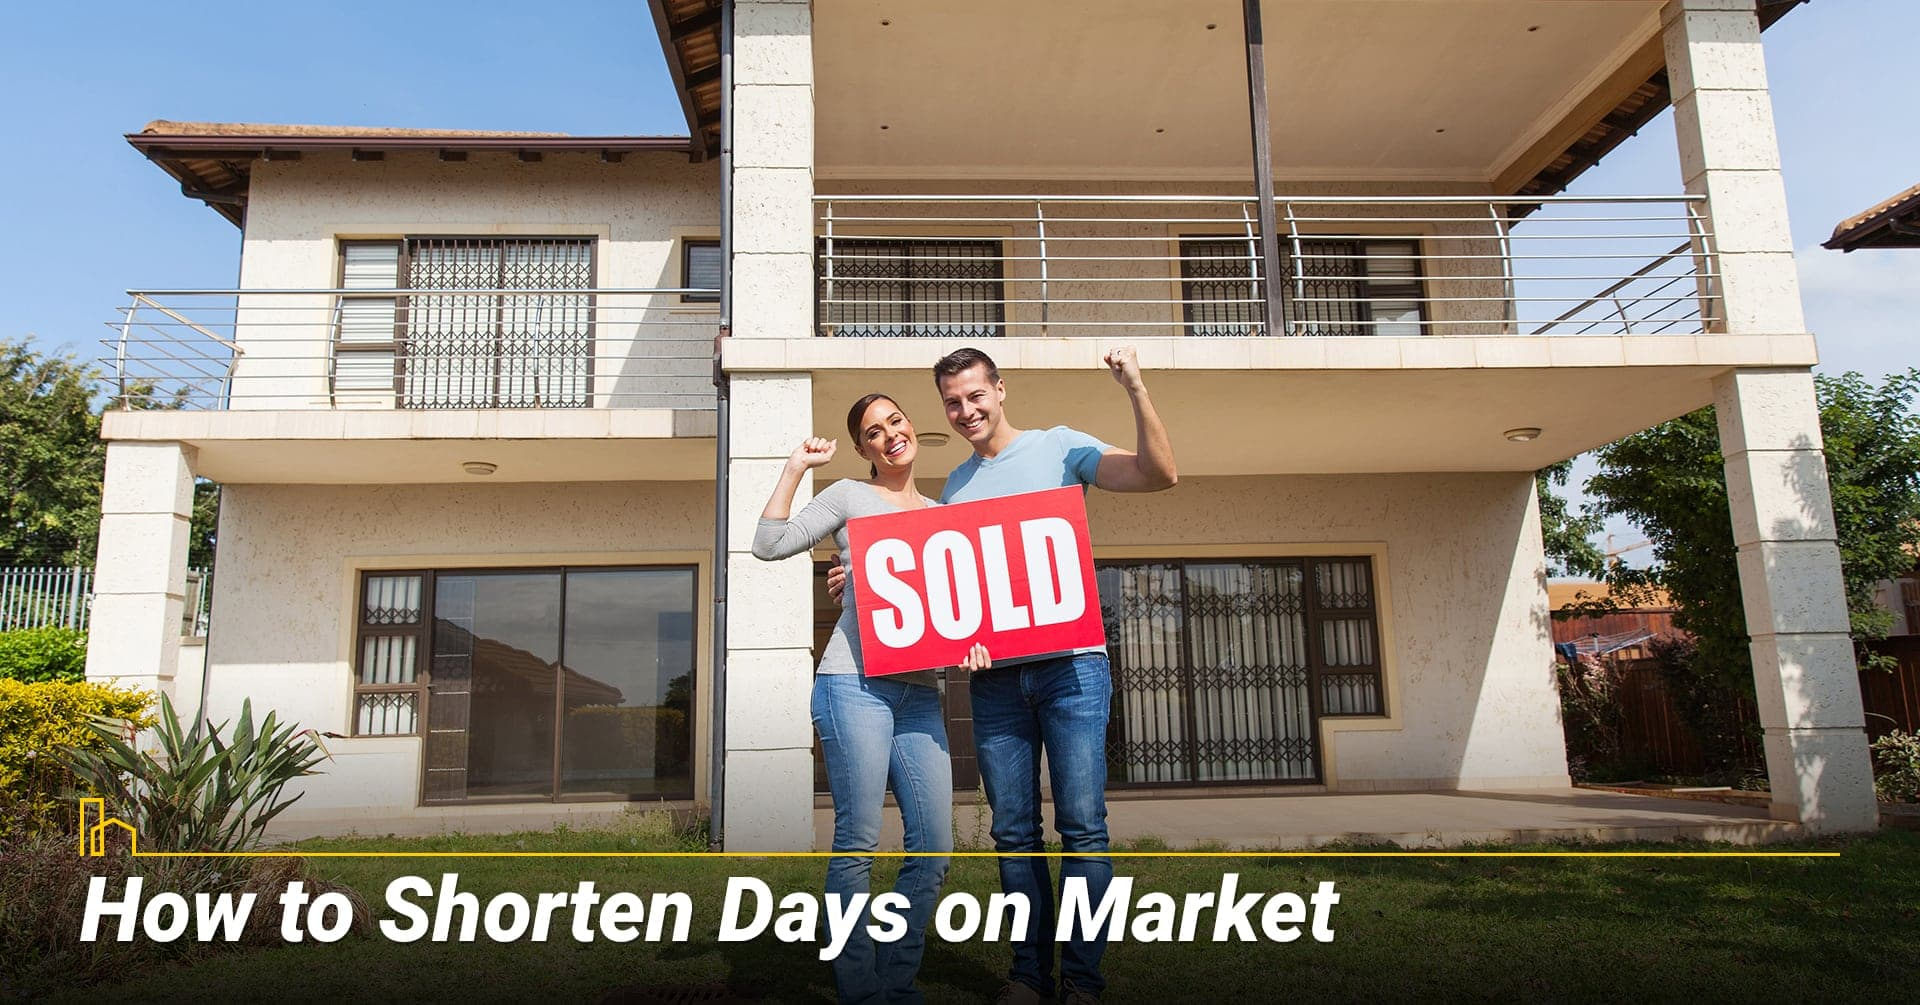 How to Shorten Days on Market. Ways to speed up the selling process